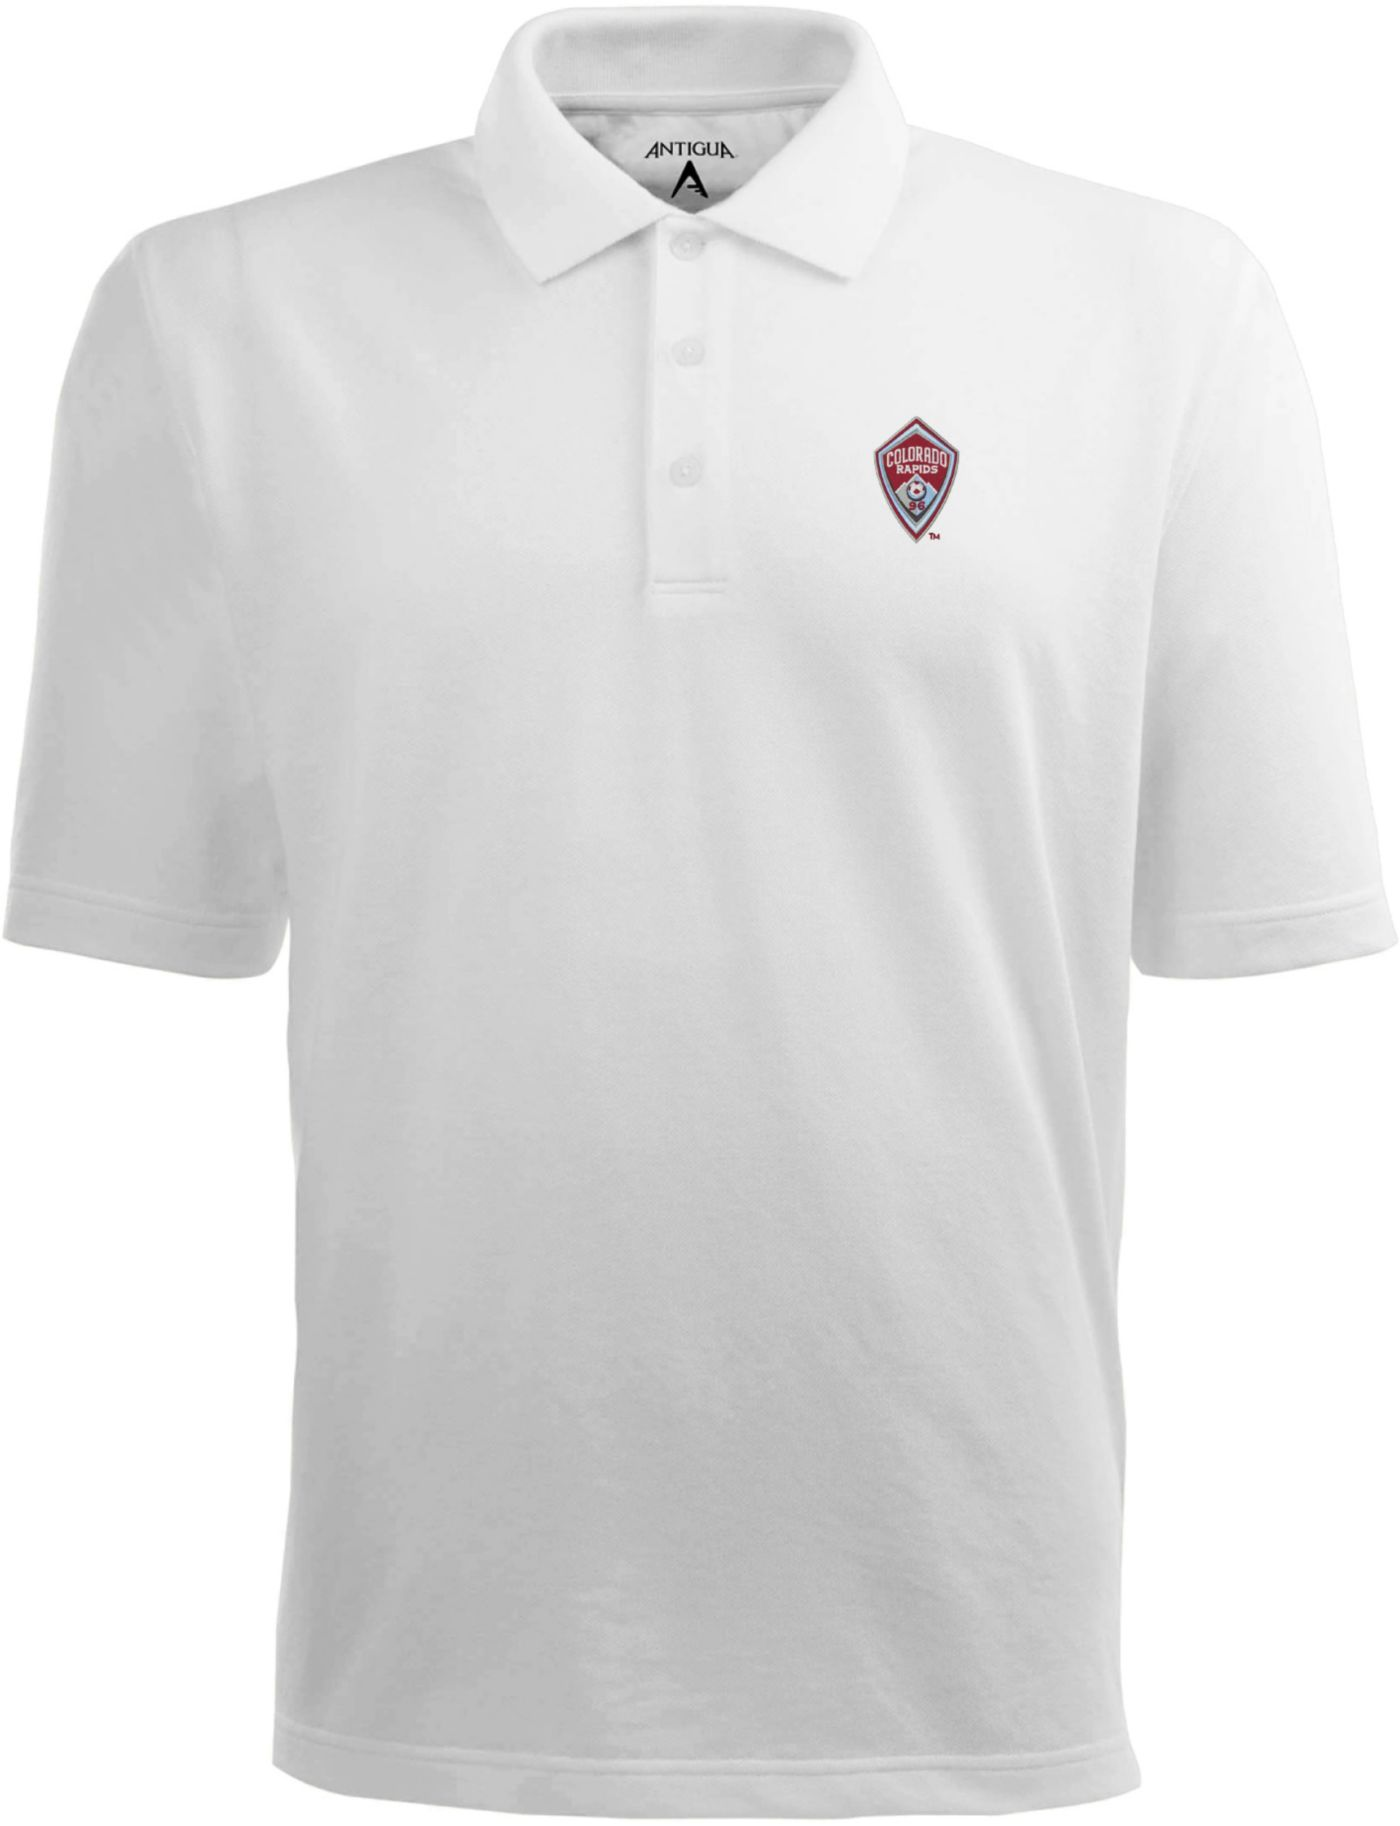 Antigua Men's Colorado Rapids Xtra-Lite Pique Performance White Polo